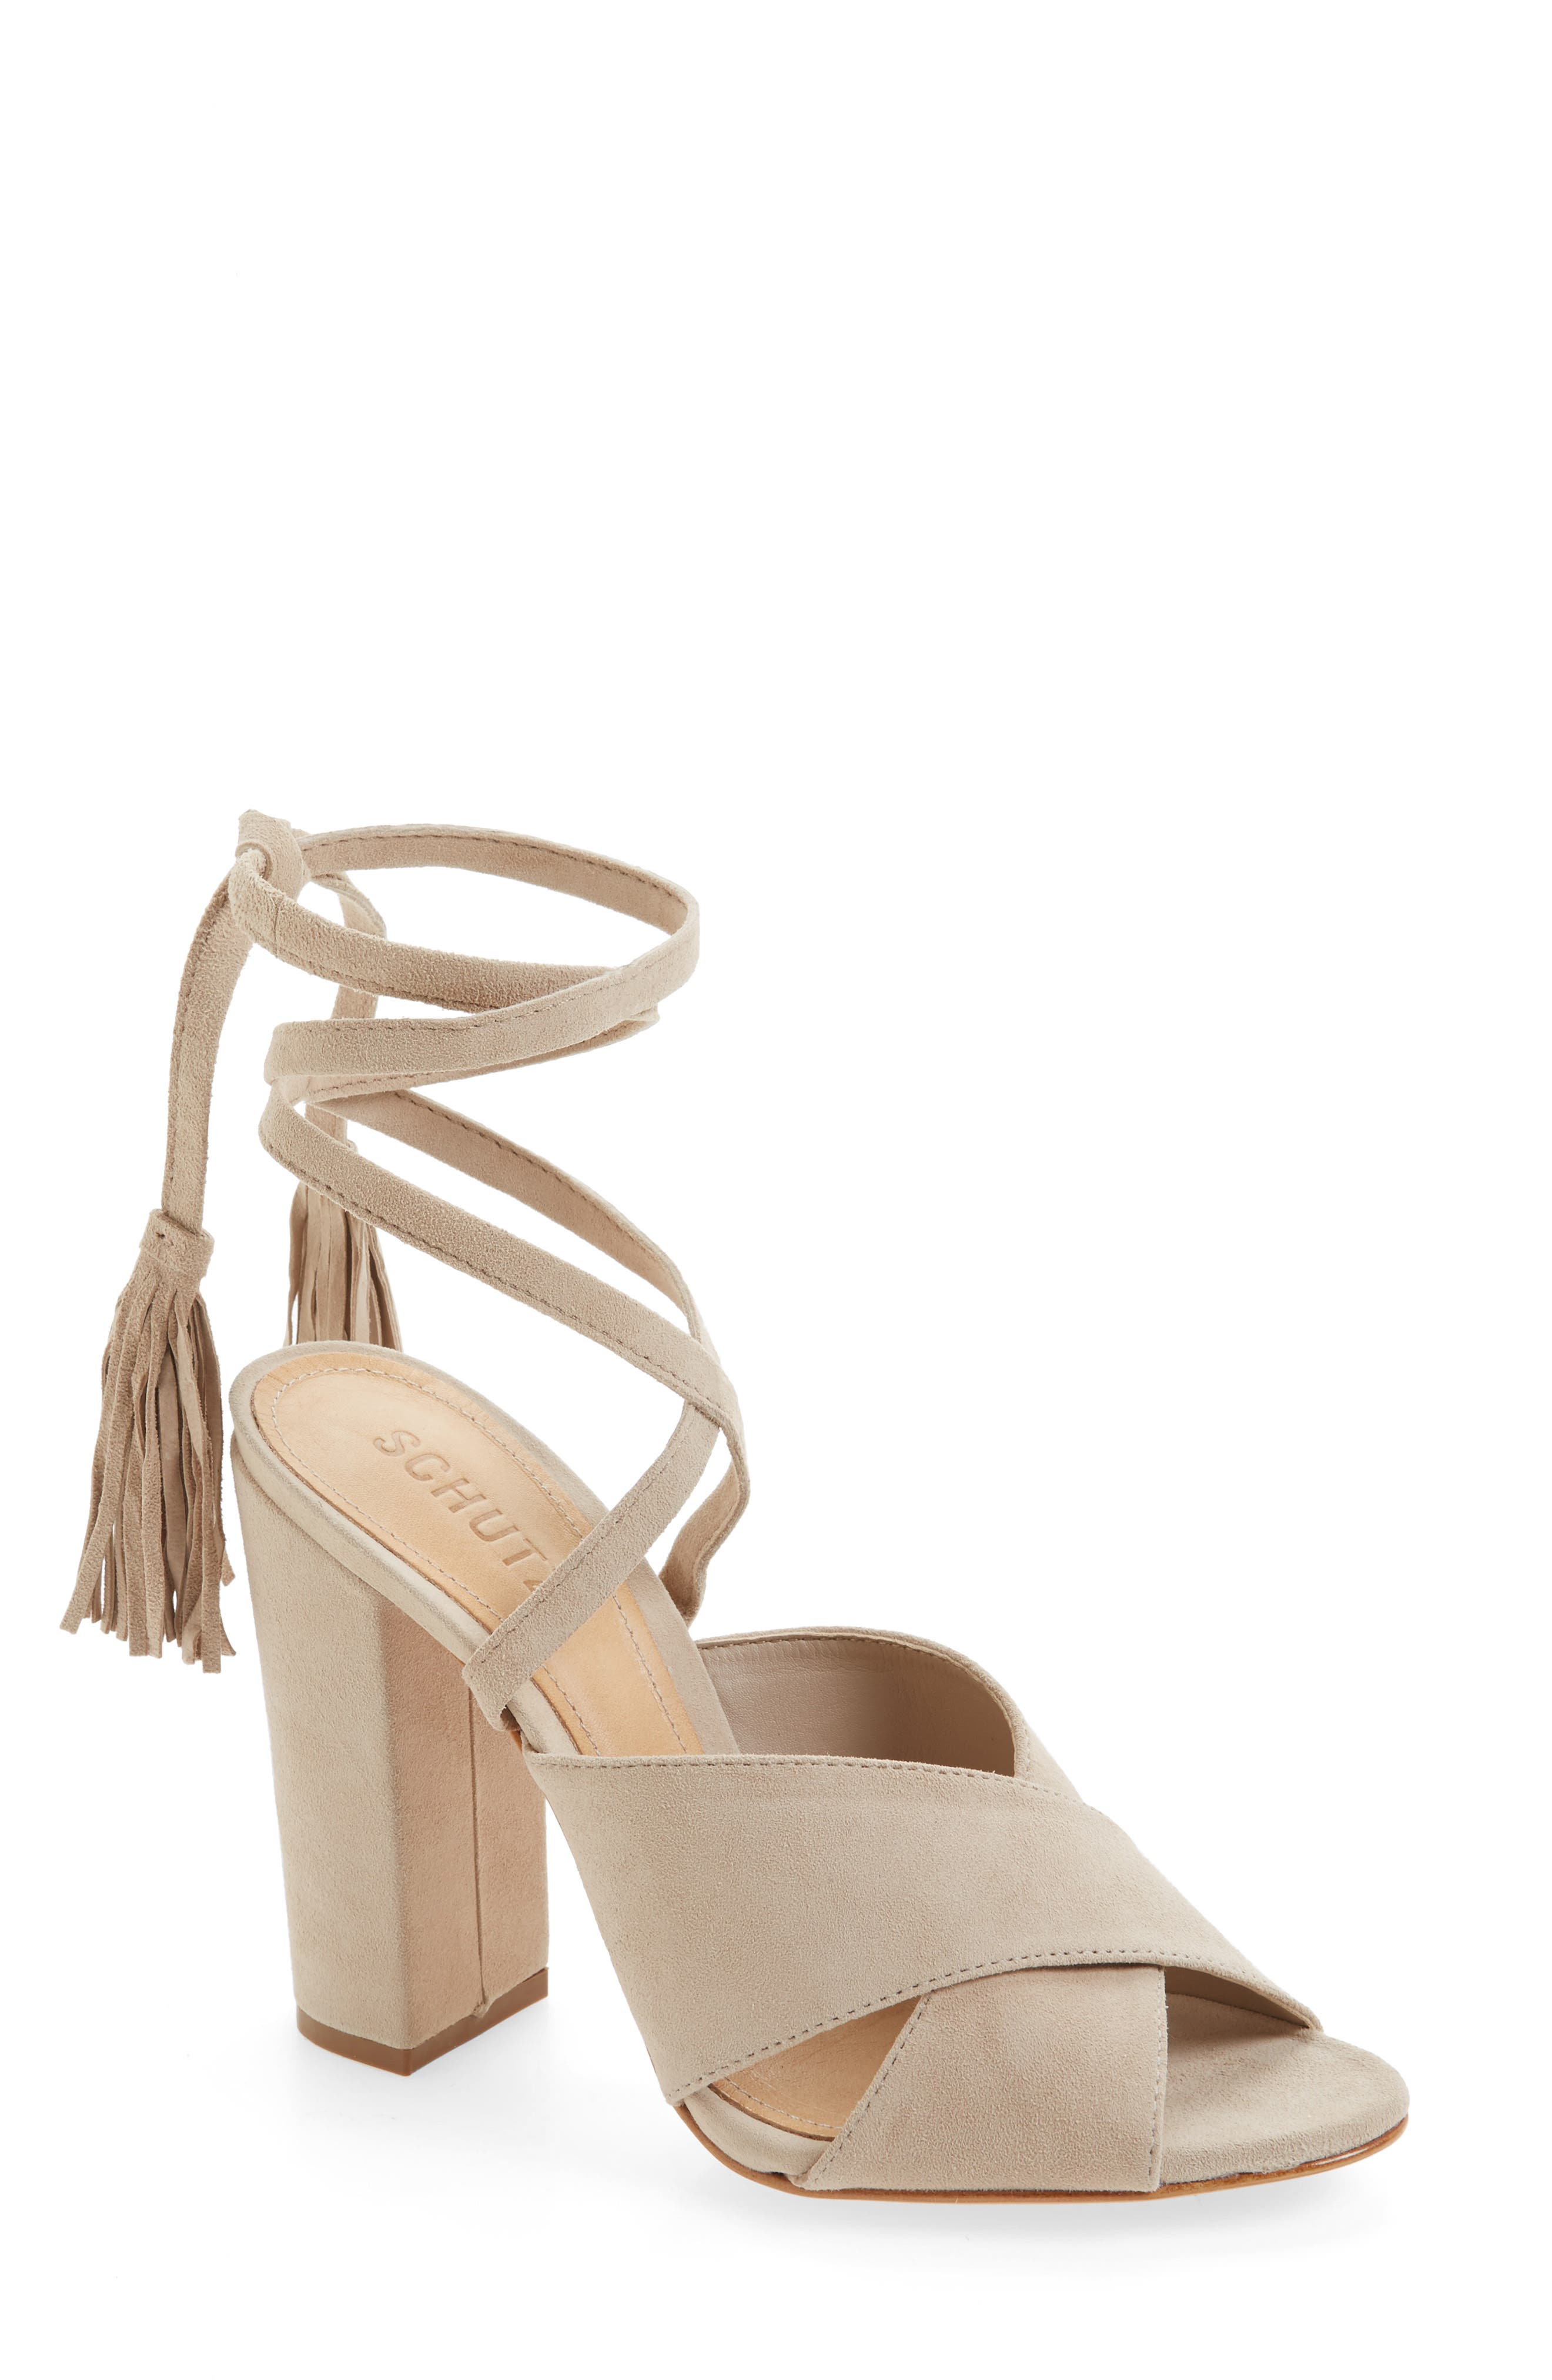 Alternate Image 1 Selected - Schutz Damila Wraparound Tassel Sandal (Women)